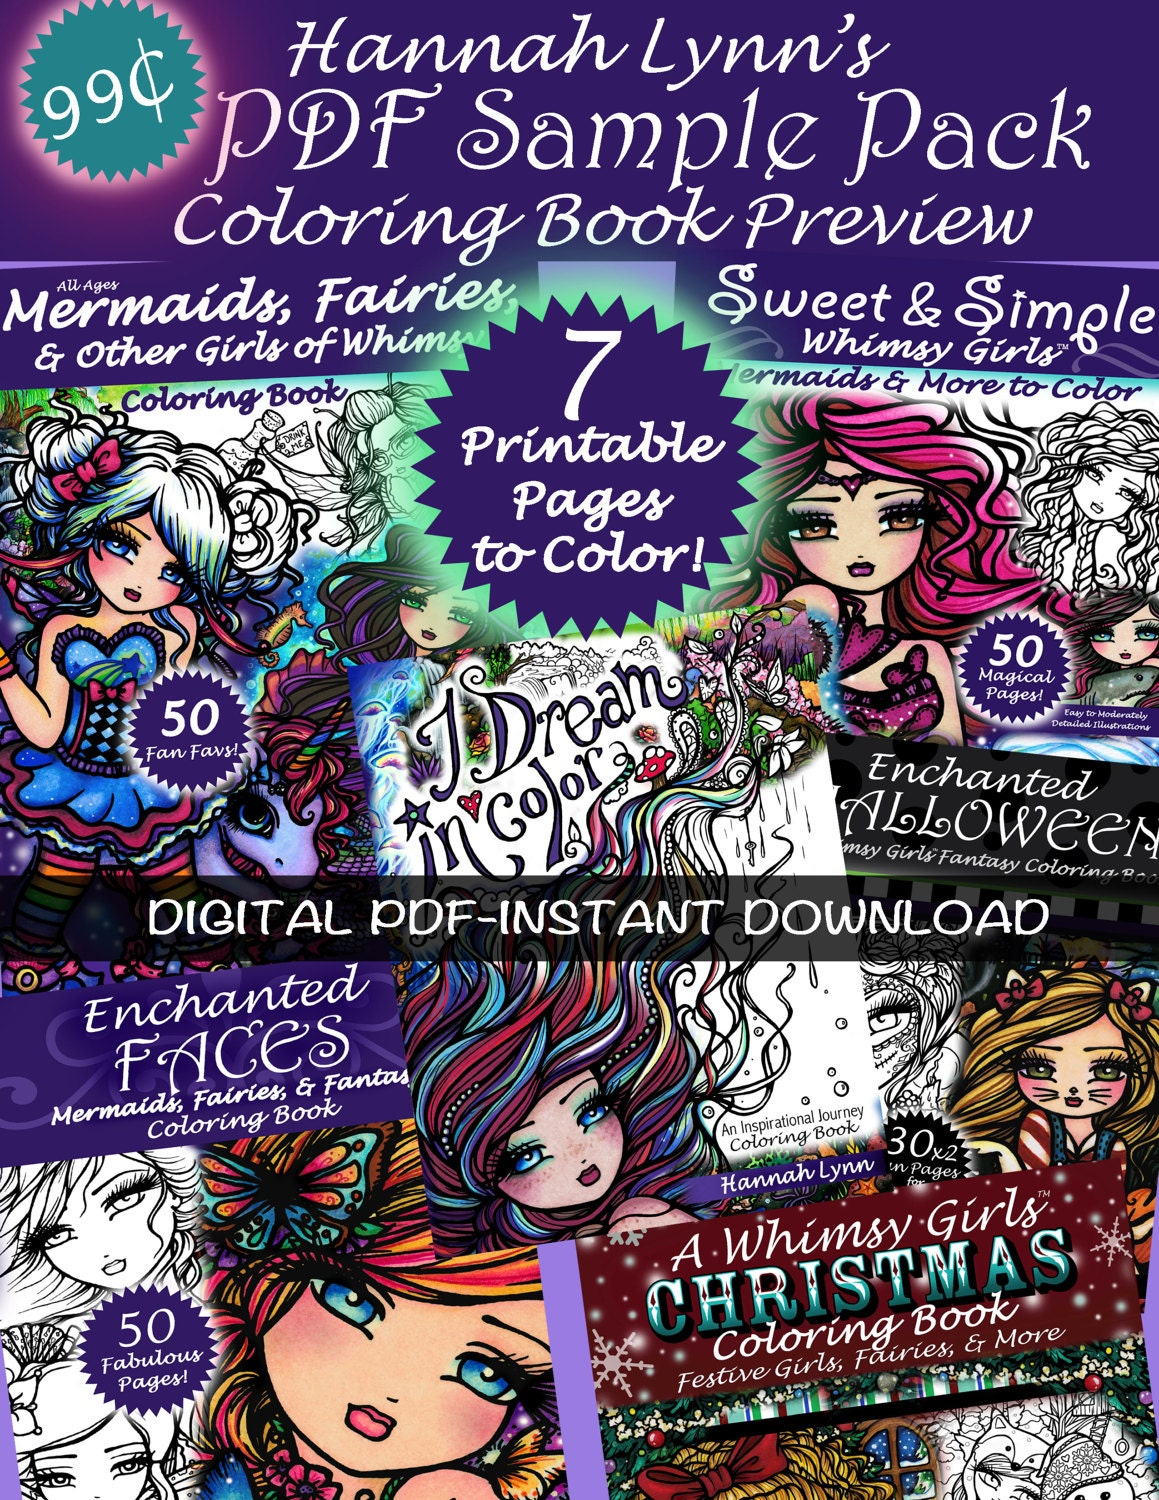 FREE Sample PDF DIGITAL Printable Coloring Book All Ages Il Fullxfull Free Pdf Digital Maui Mermaids Island Whimsy